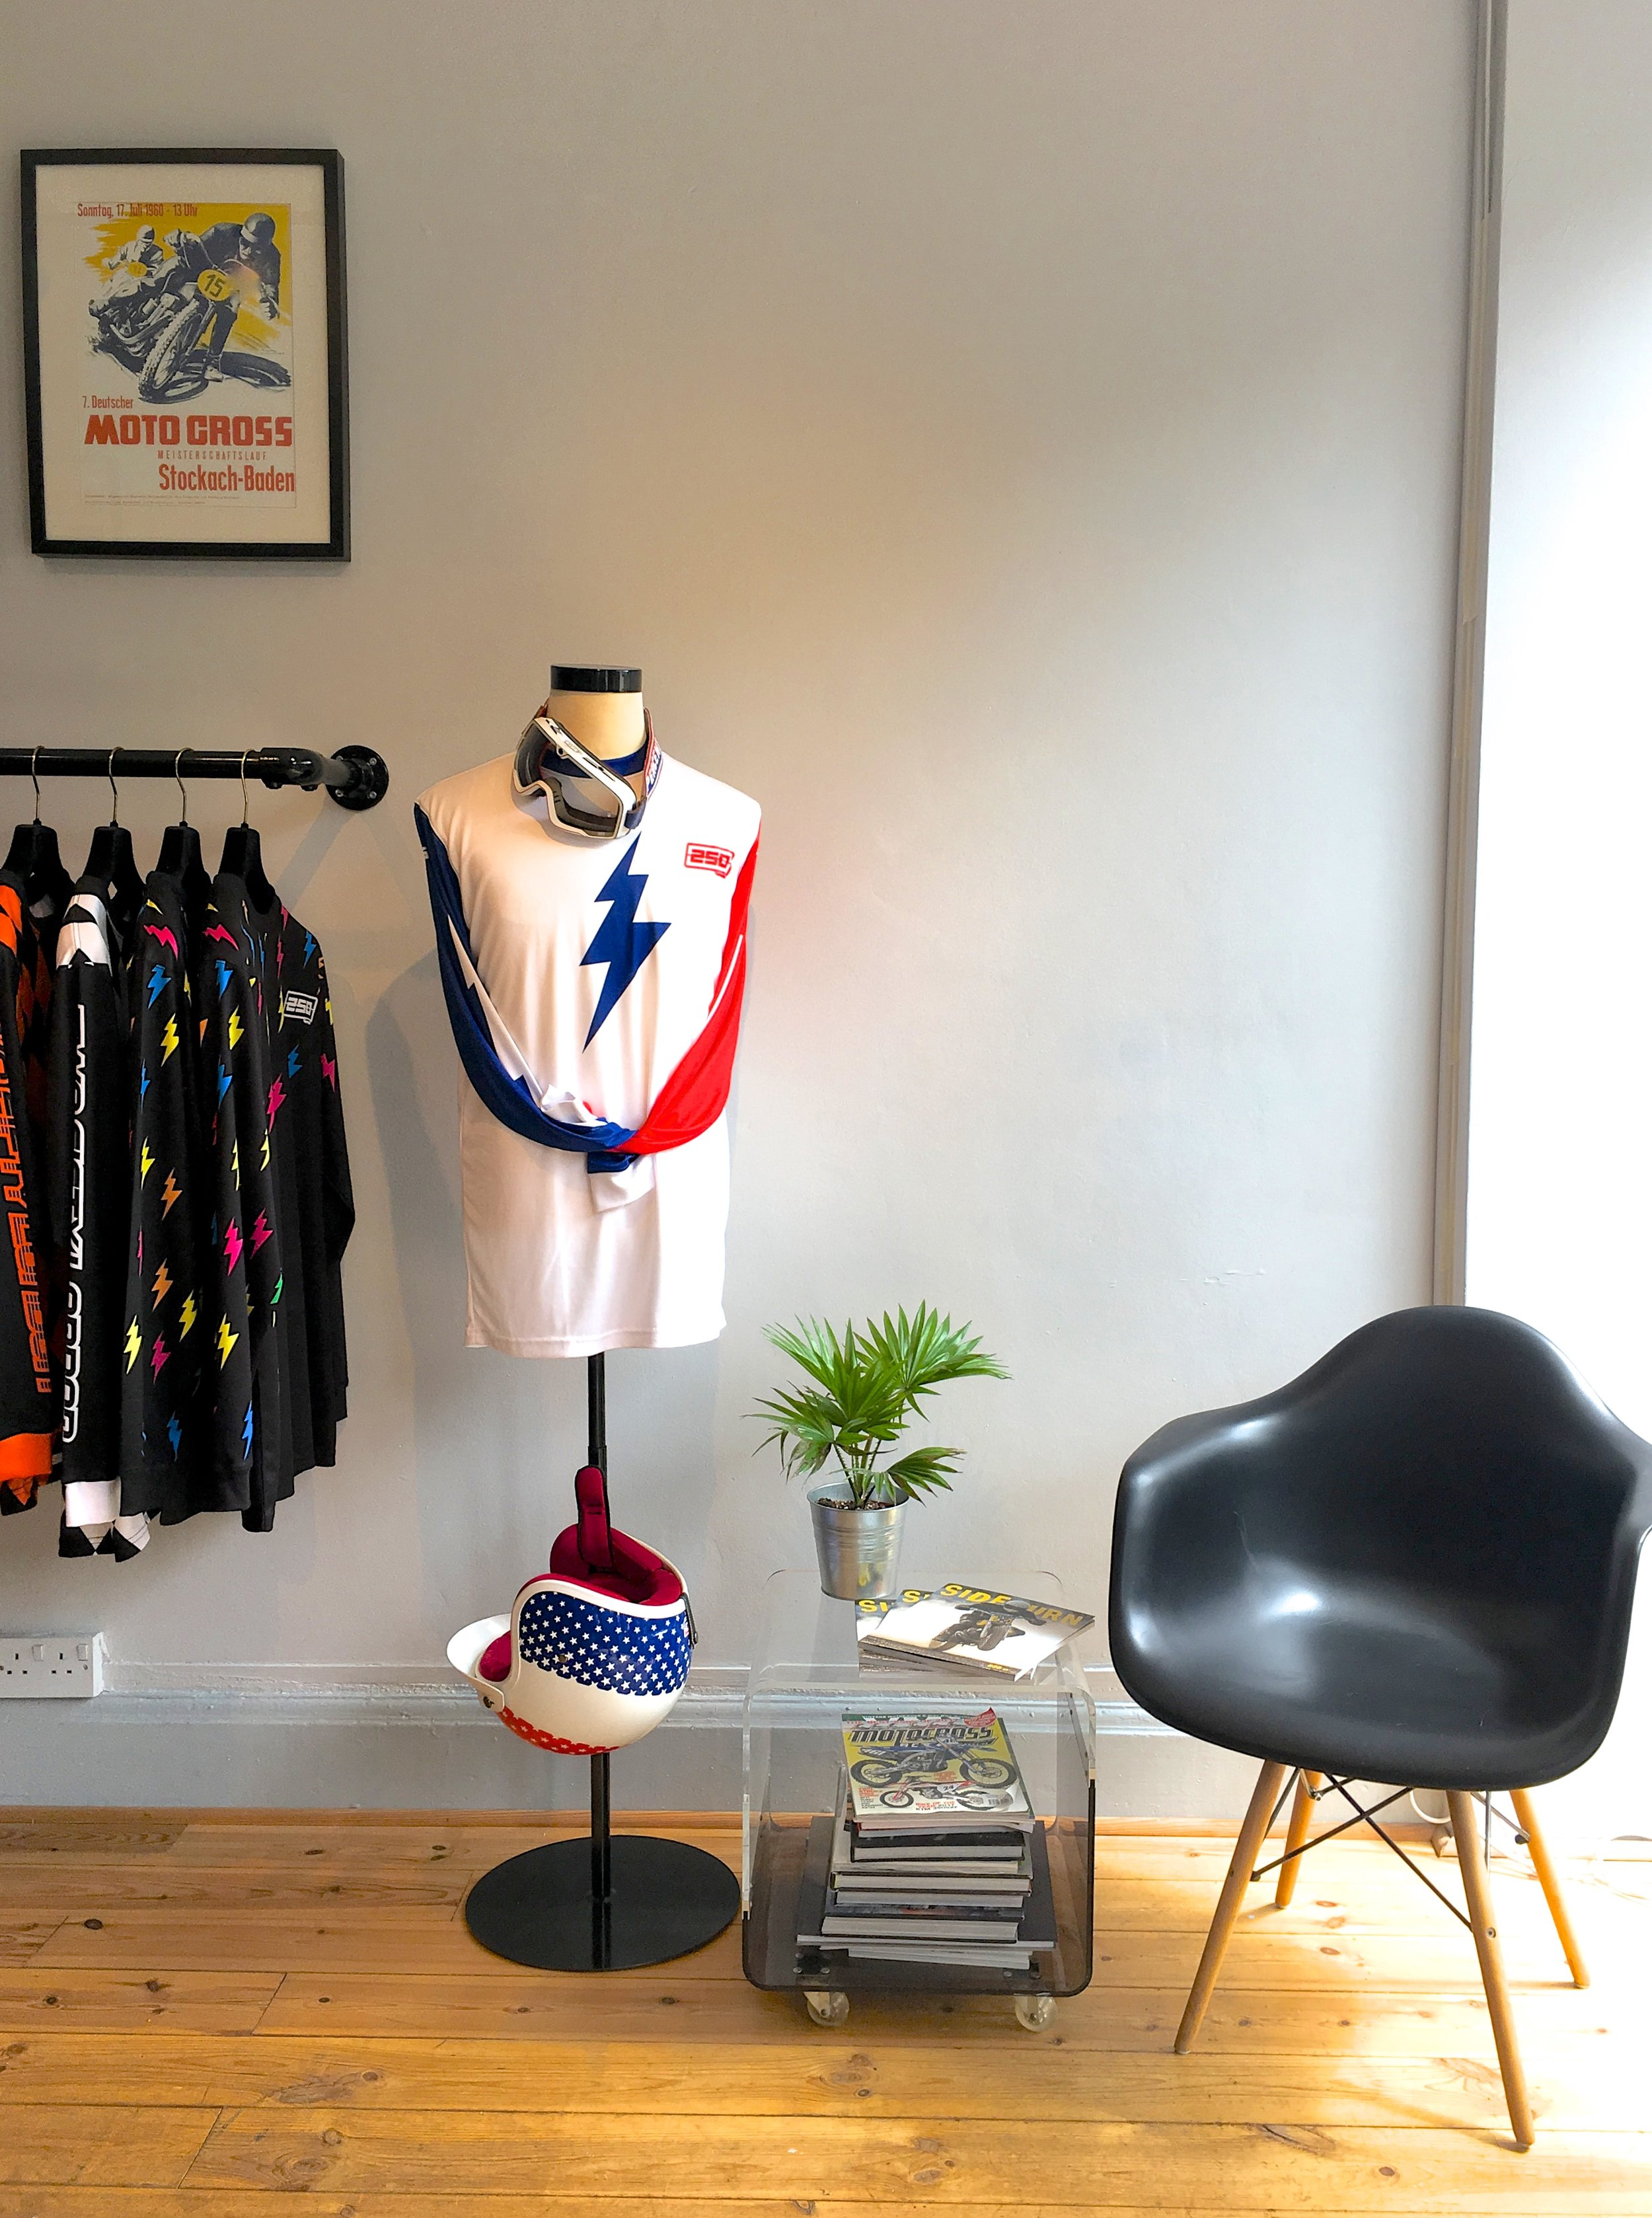 The space is bright and vibrant, reflecting the brand perfectly